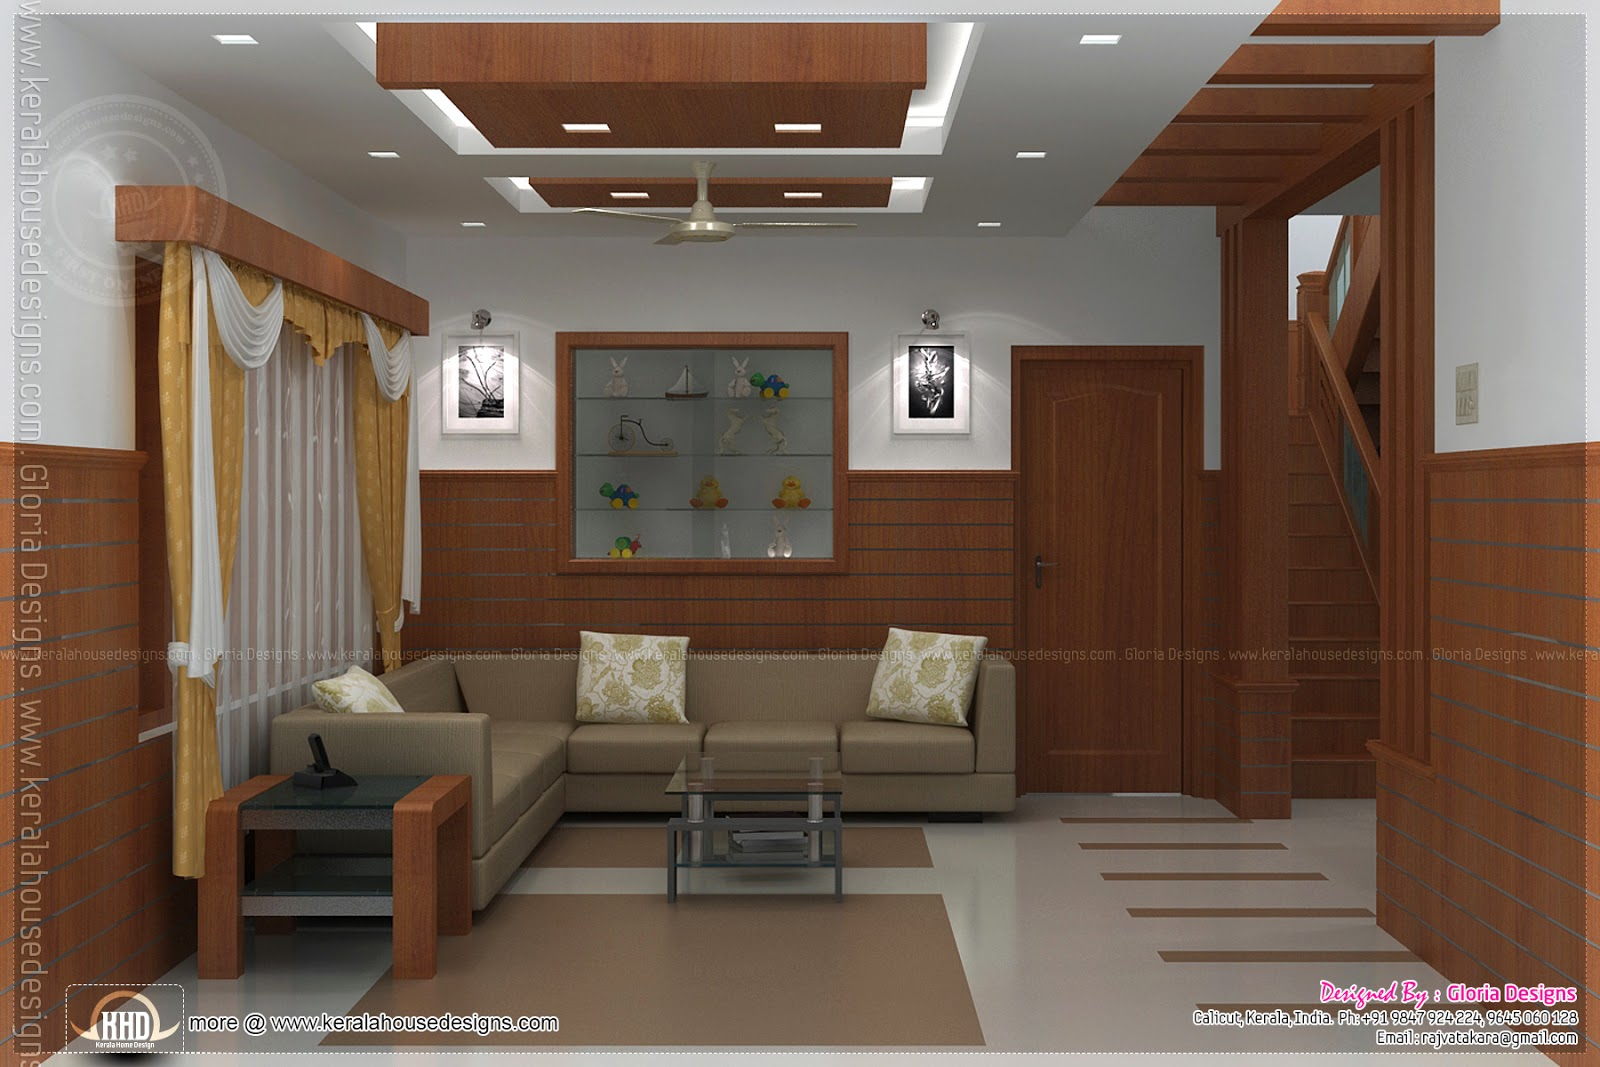 Home interior designs by gloria designs calicut kerala for Interior design ideas for small homes in kerala